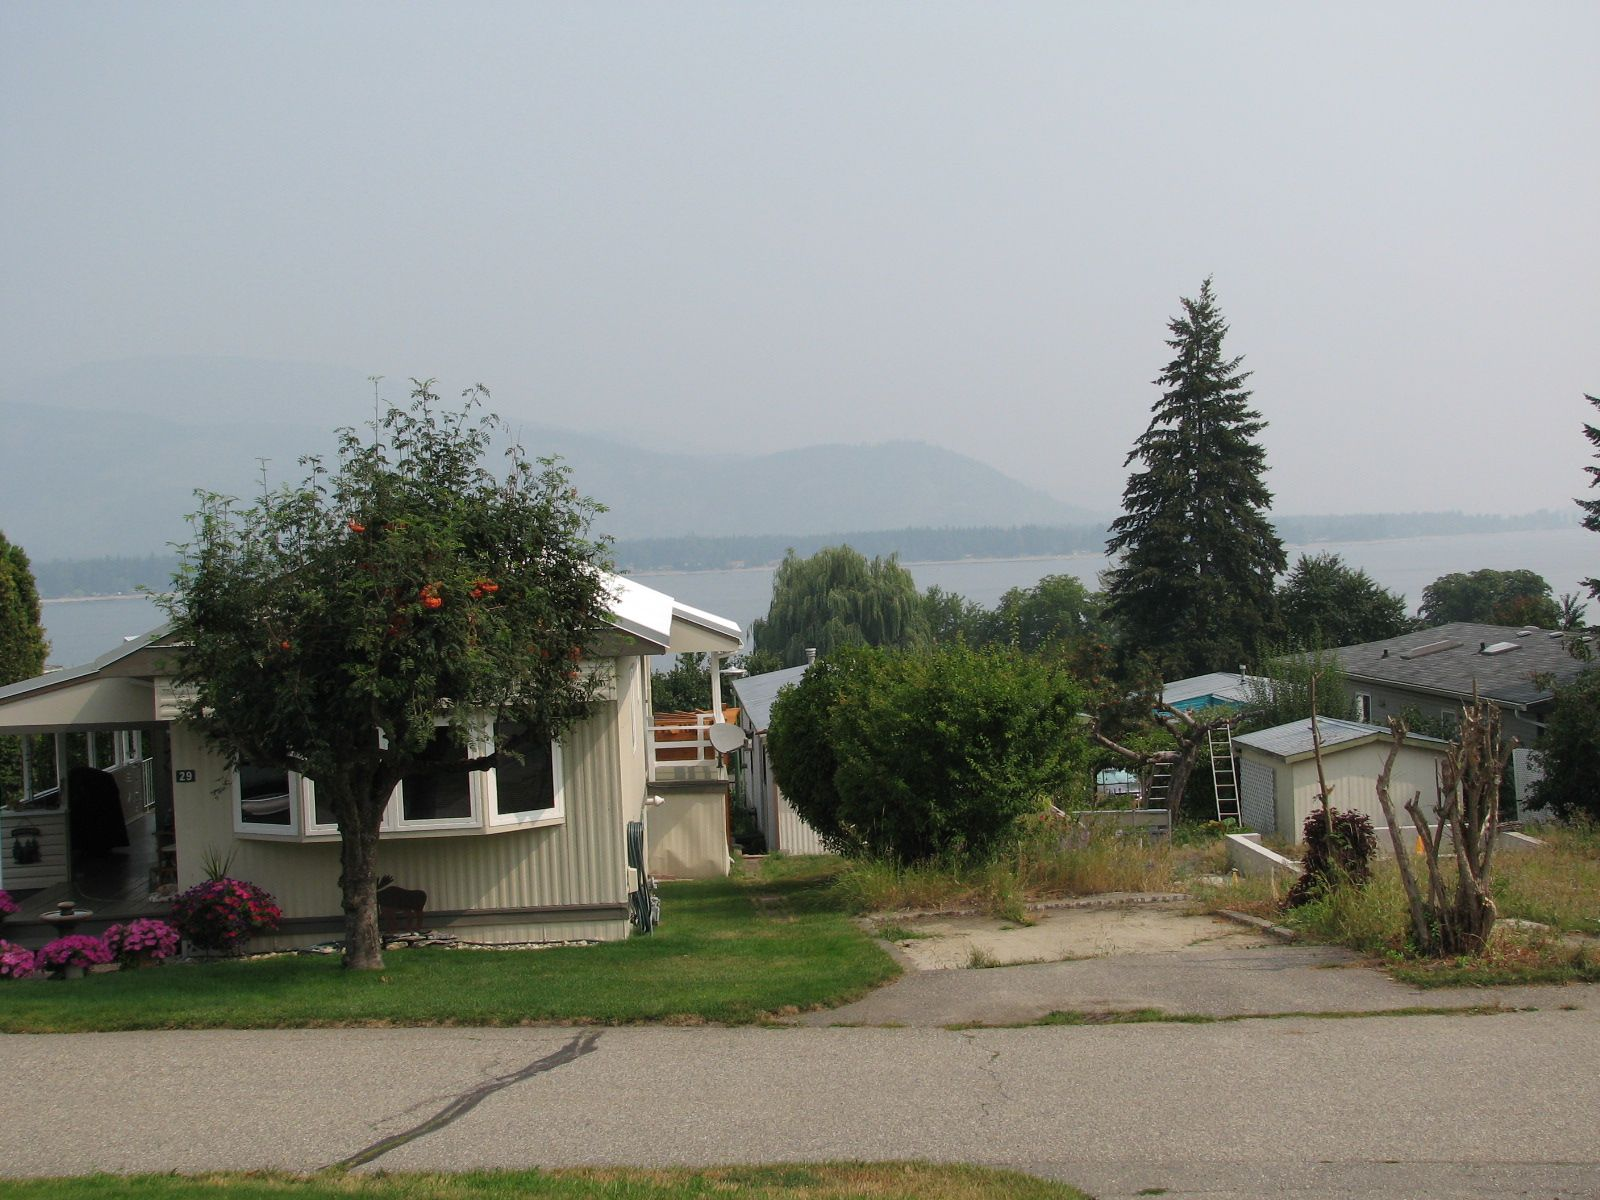 Smoke in the air is masking a beautiful lakeview